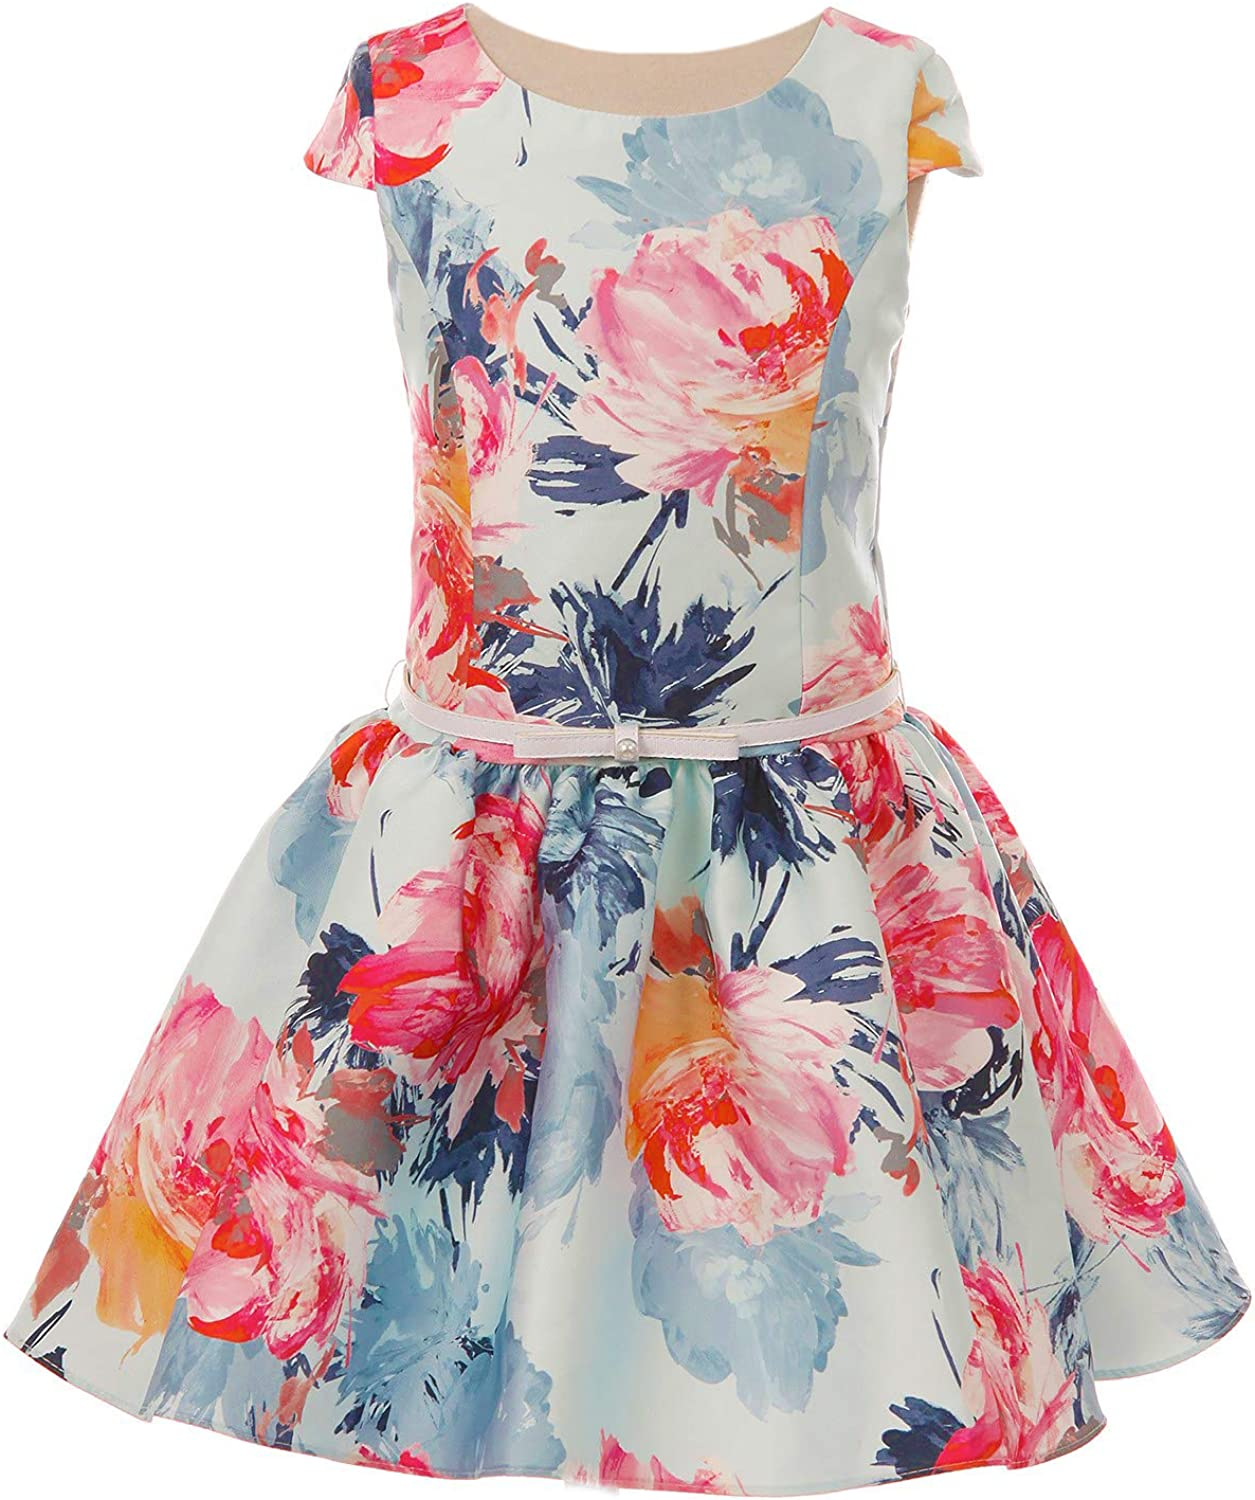 Dempsey Marie Girls Drop Waist Silhouette Vibrant Watercolor Floral Print Mikado Special Occasion Dress